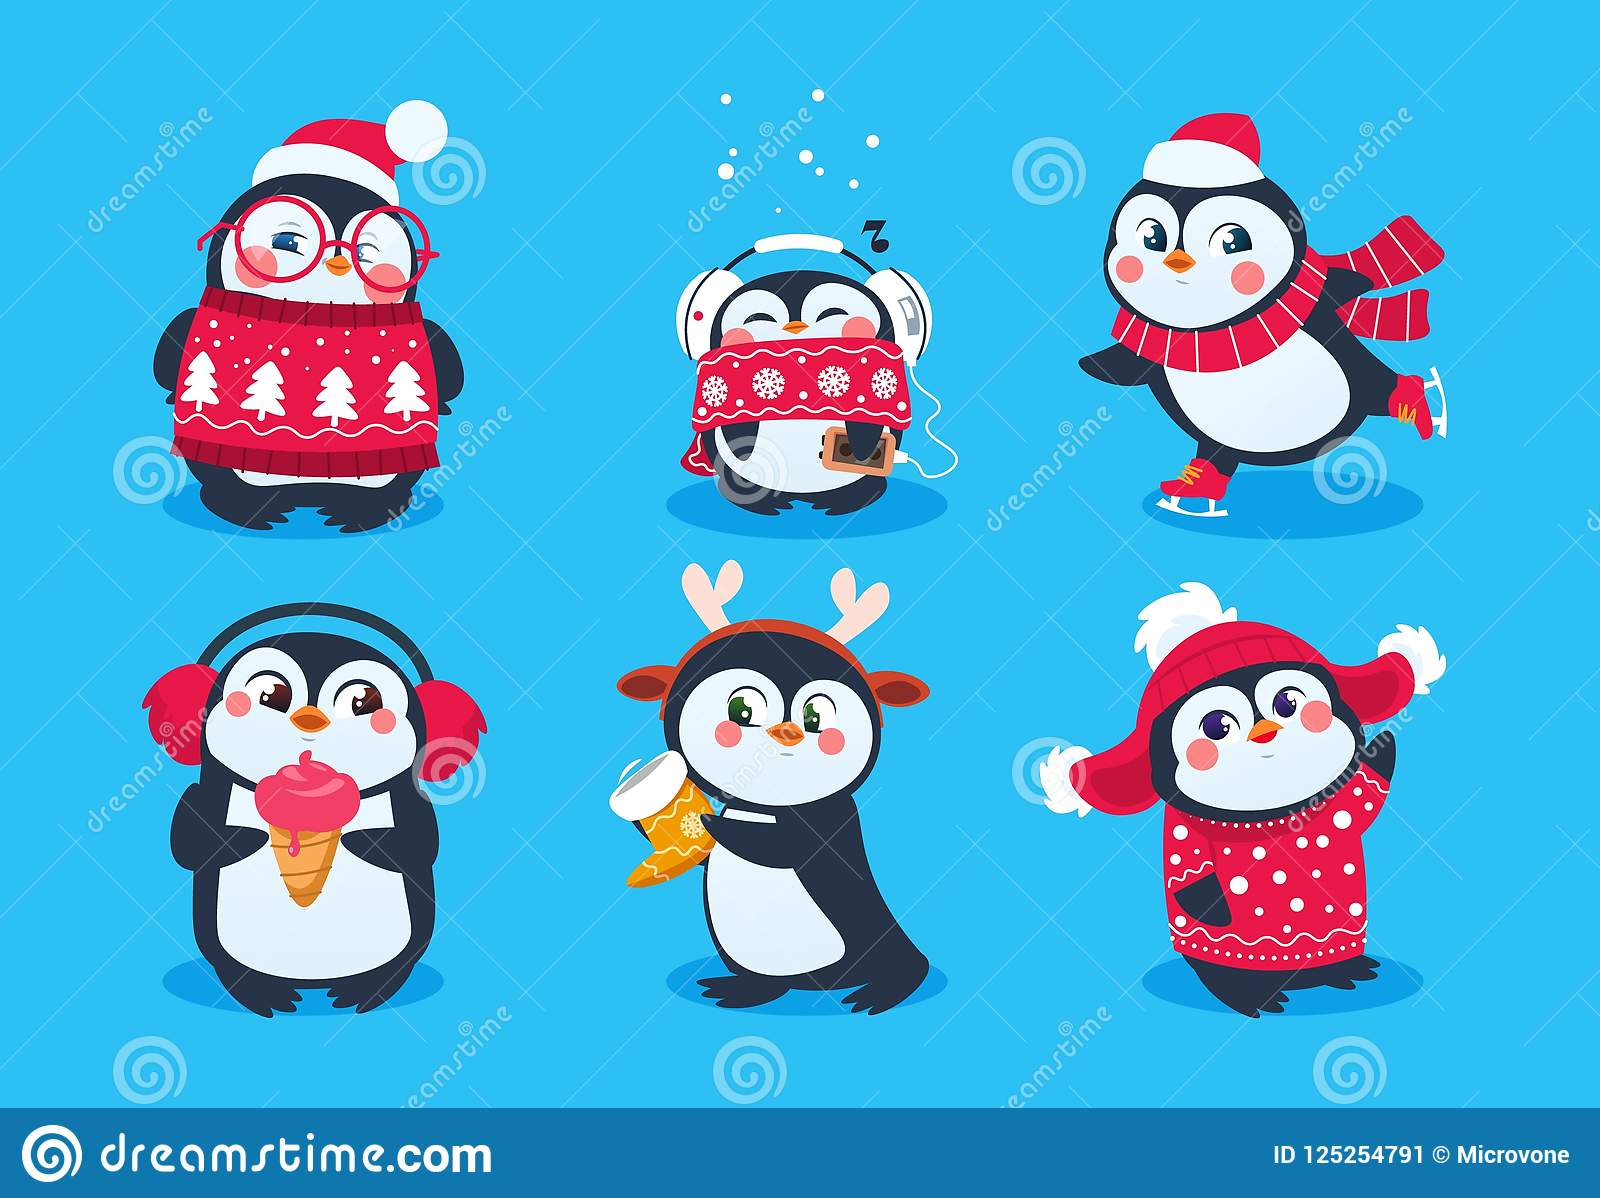 Christmas penguin. Funny snow animals, cute baby penguins cartoon characters in winter hat. Isolated vector set